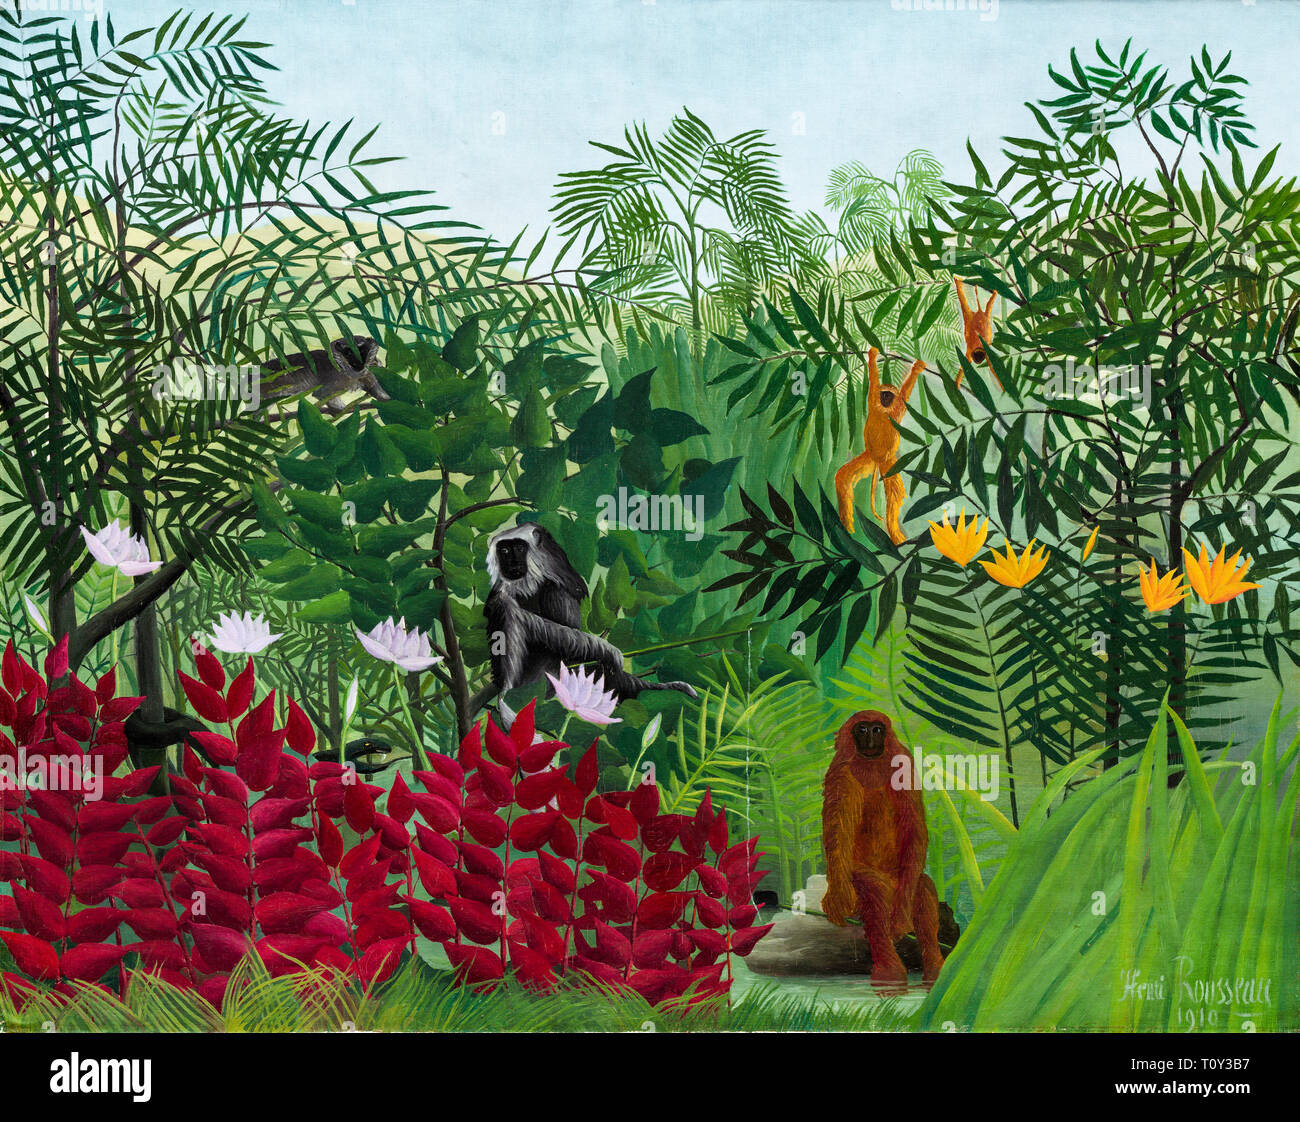 Henri Rousseau, Tropical Forest with Monkeys, painting, 1910 - Stock Image